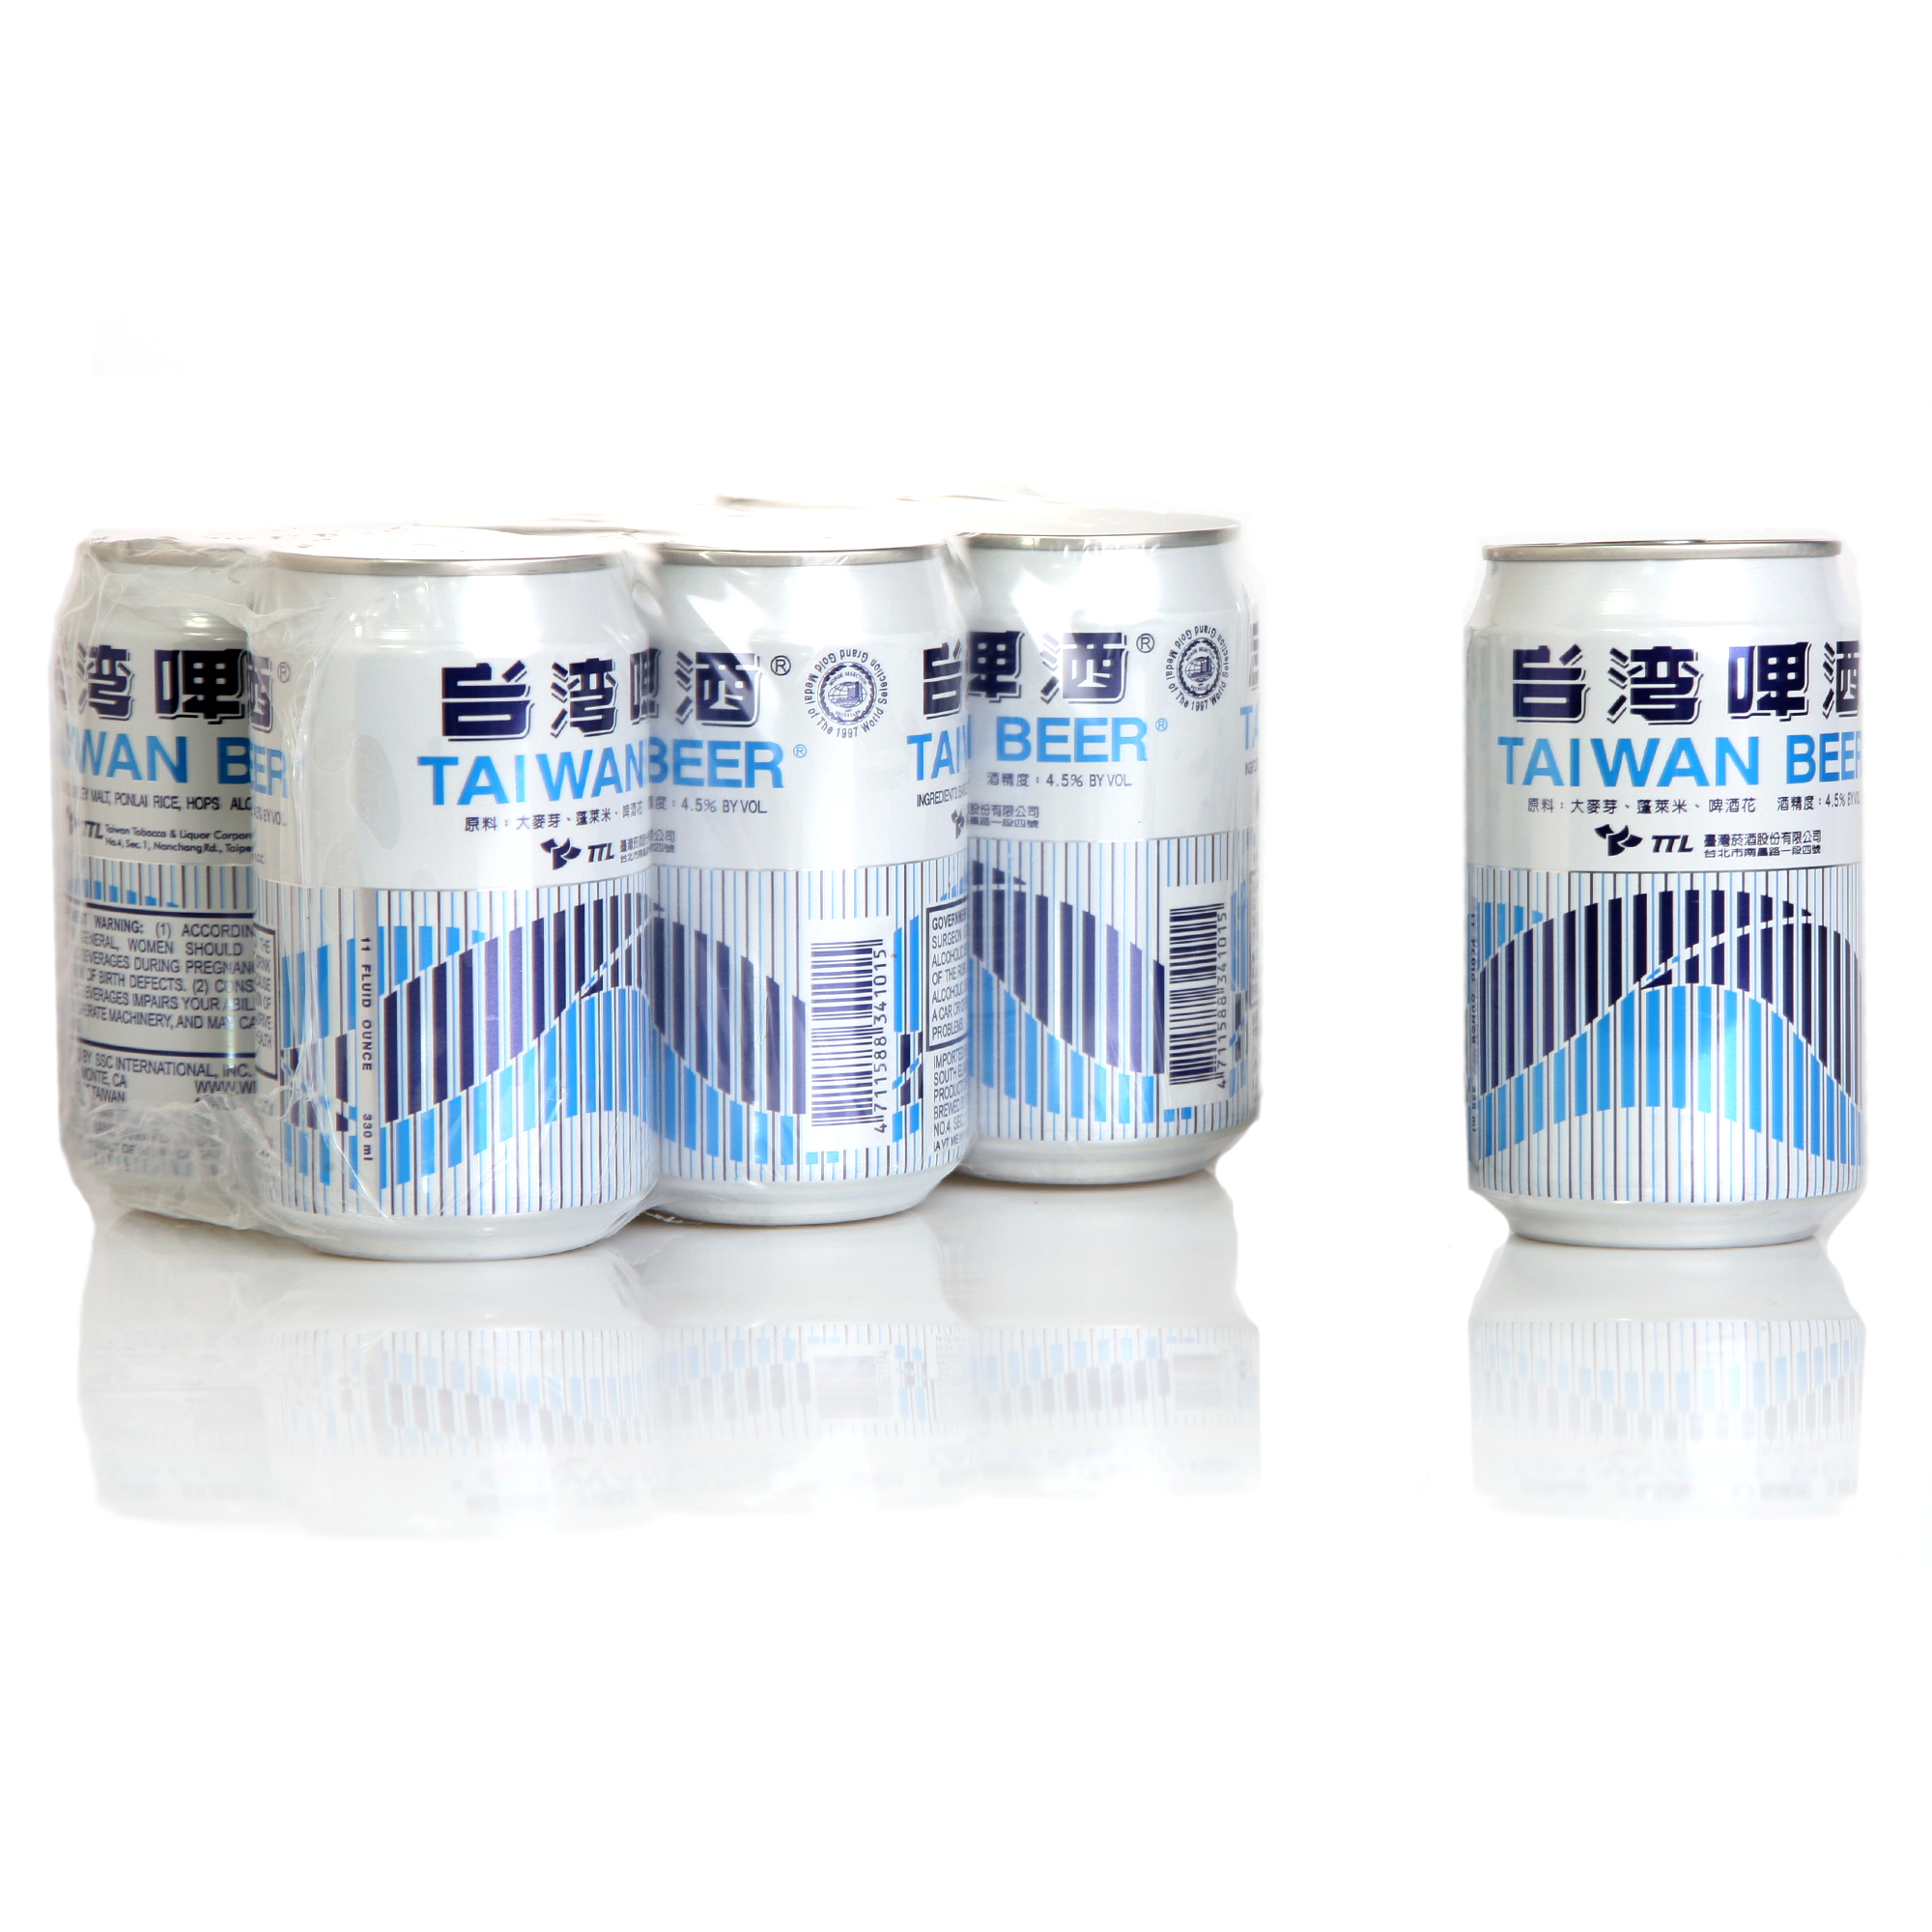 Taiwan beer-6 pack can 1